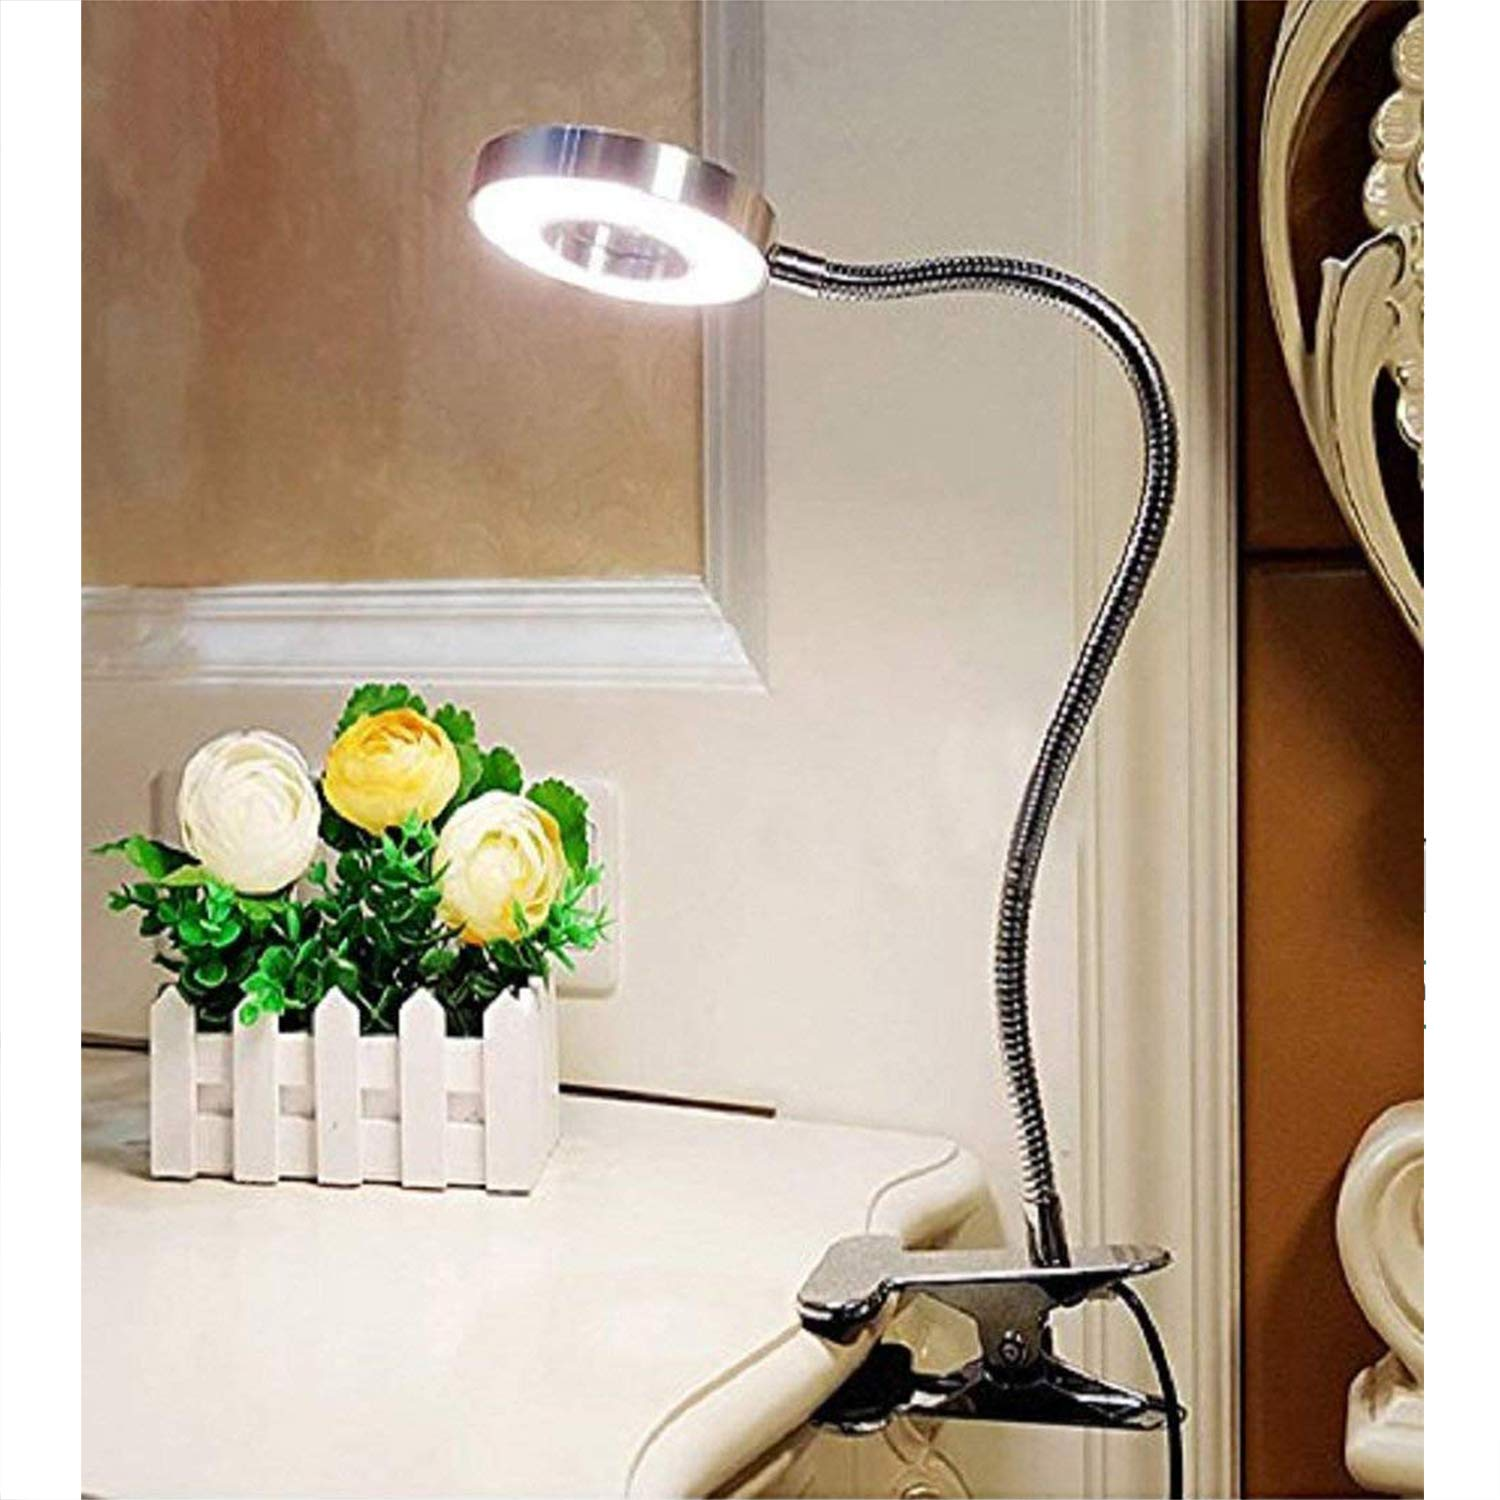 Kids Desk Lamp Eye Protection EFGS 6W LED USB Clip On Reading Light For Books Warm /& Cool Light Colour Bedroom With Clamp Book Light For Reading In Bed Silver Kindle